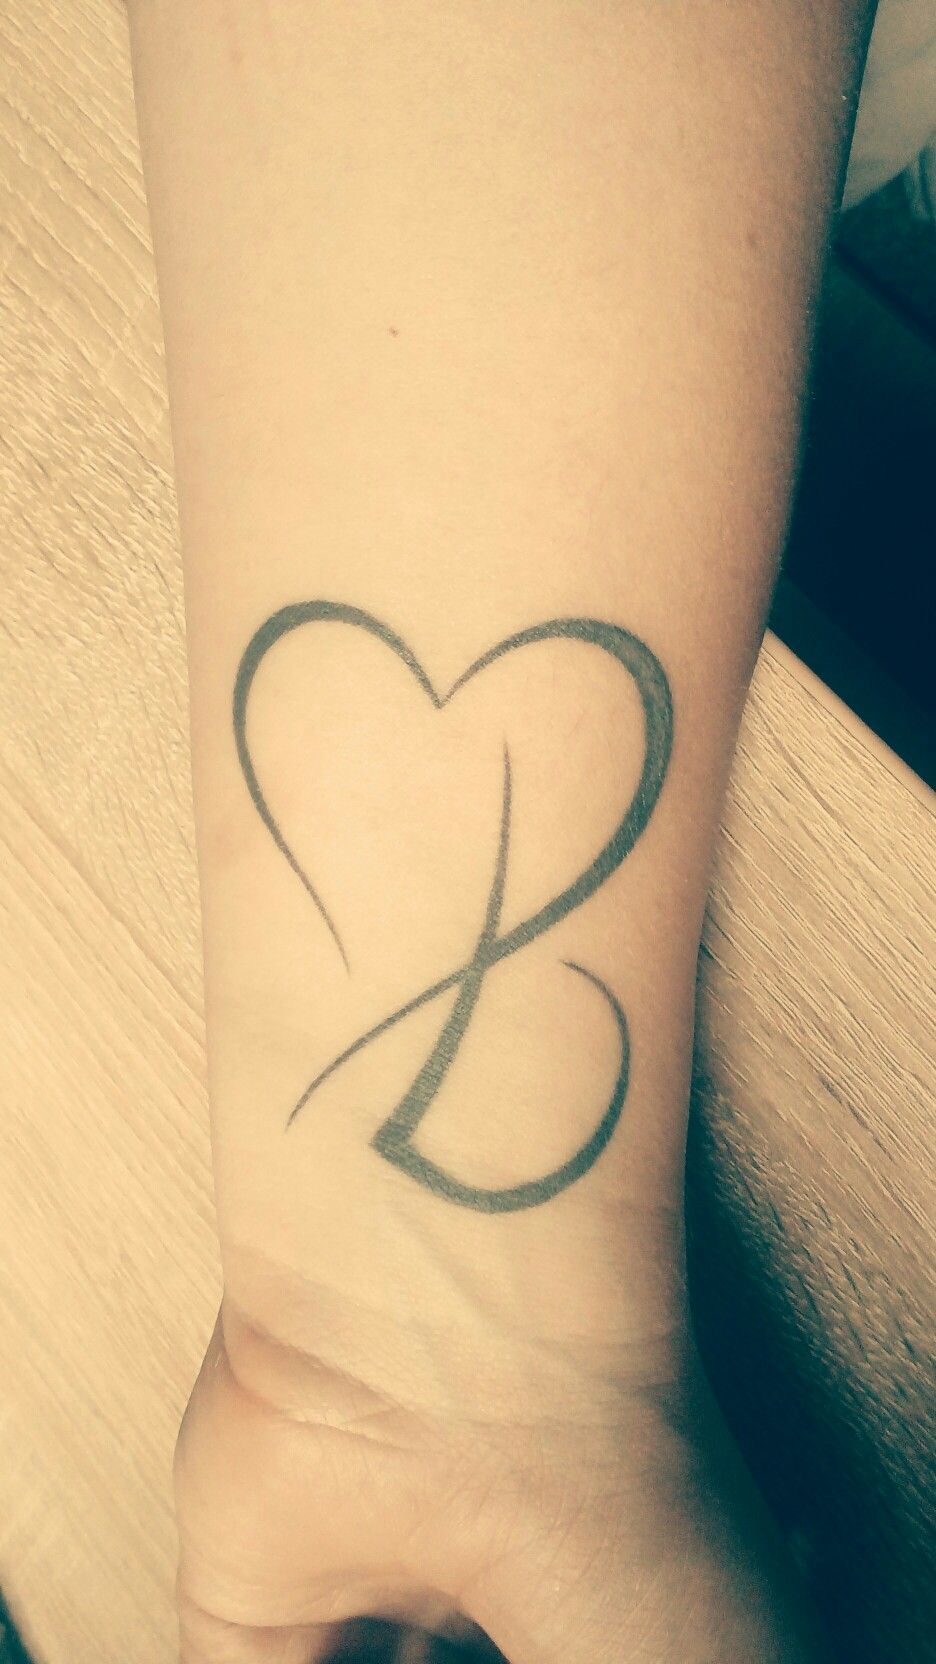 Image Result For Letter B Tattoo Letter B Tattoo B Tattoo Heart Tattoo